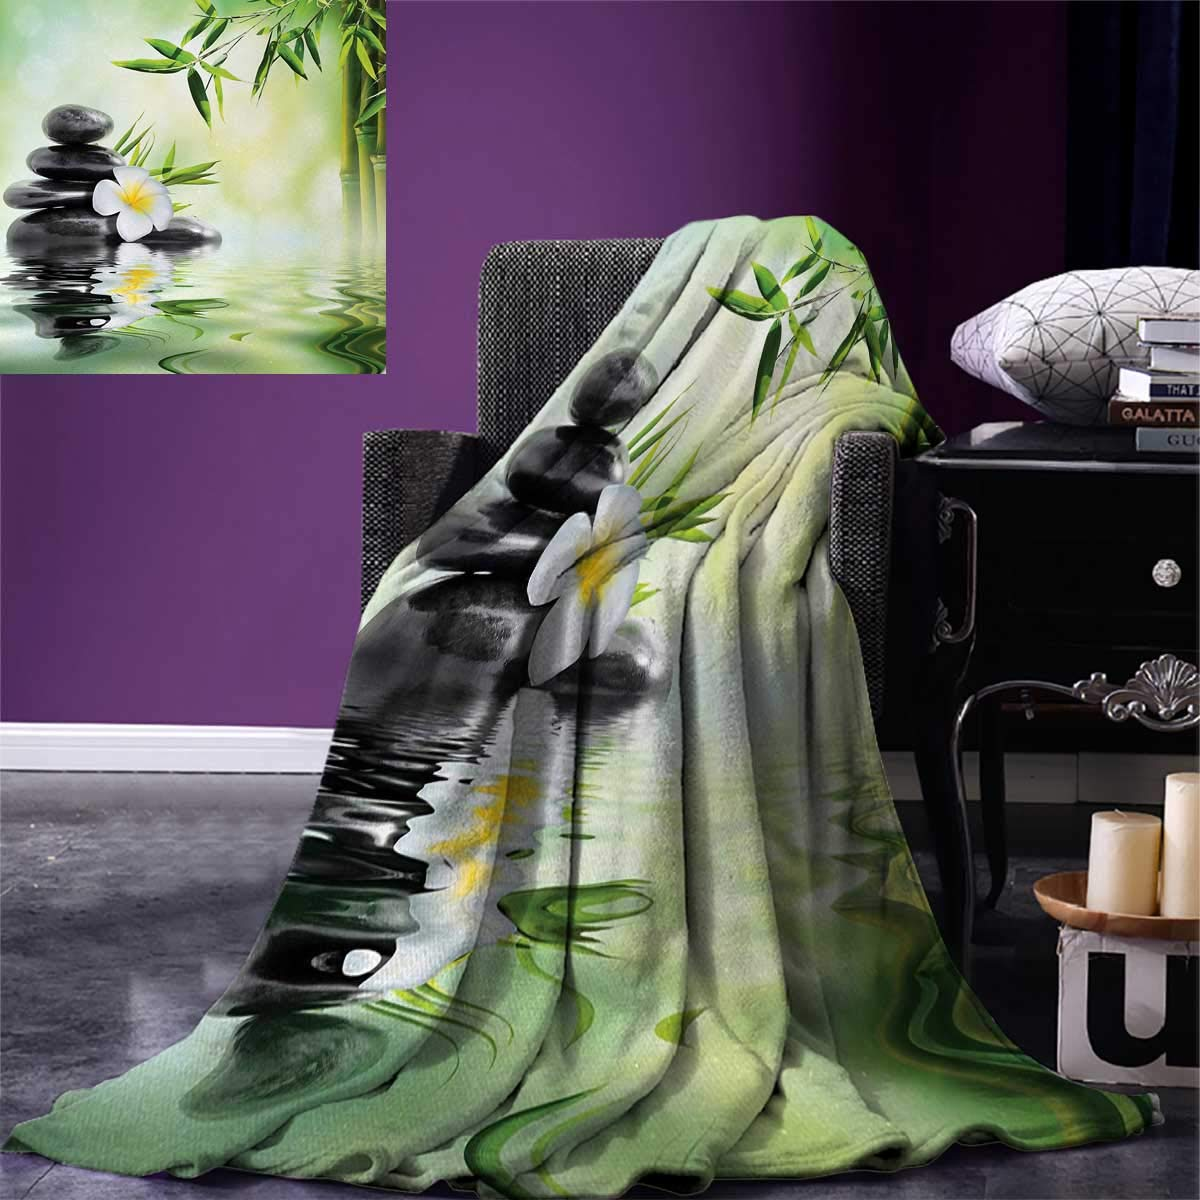 Spa Digital Printing Blanket Garden with Frangipani Bamboo Japanese Relaxation Resting Travel Summer Quilt Comforter 80''x60'' Pale Green Charcoal Grey Yellow